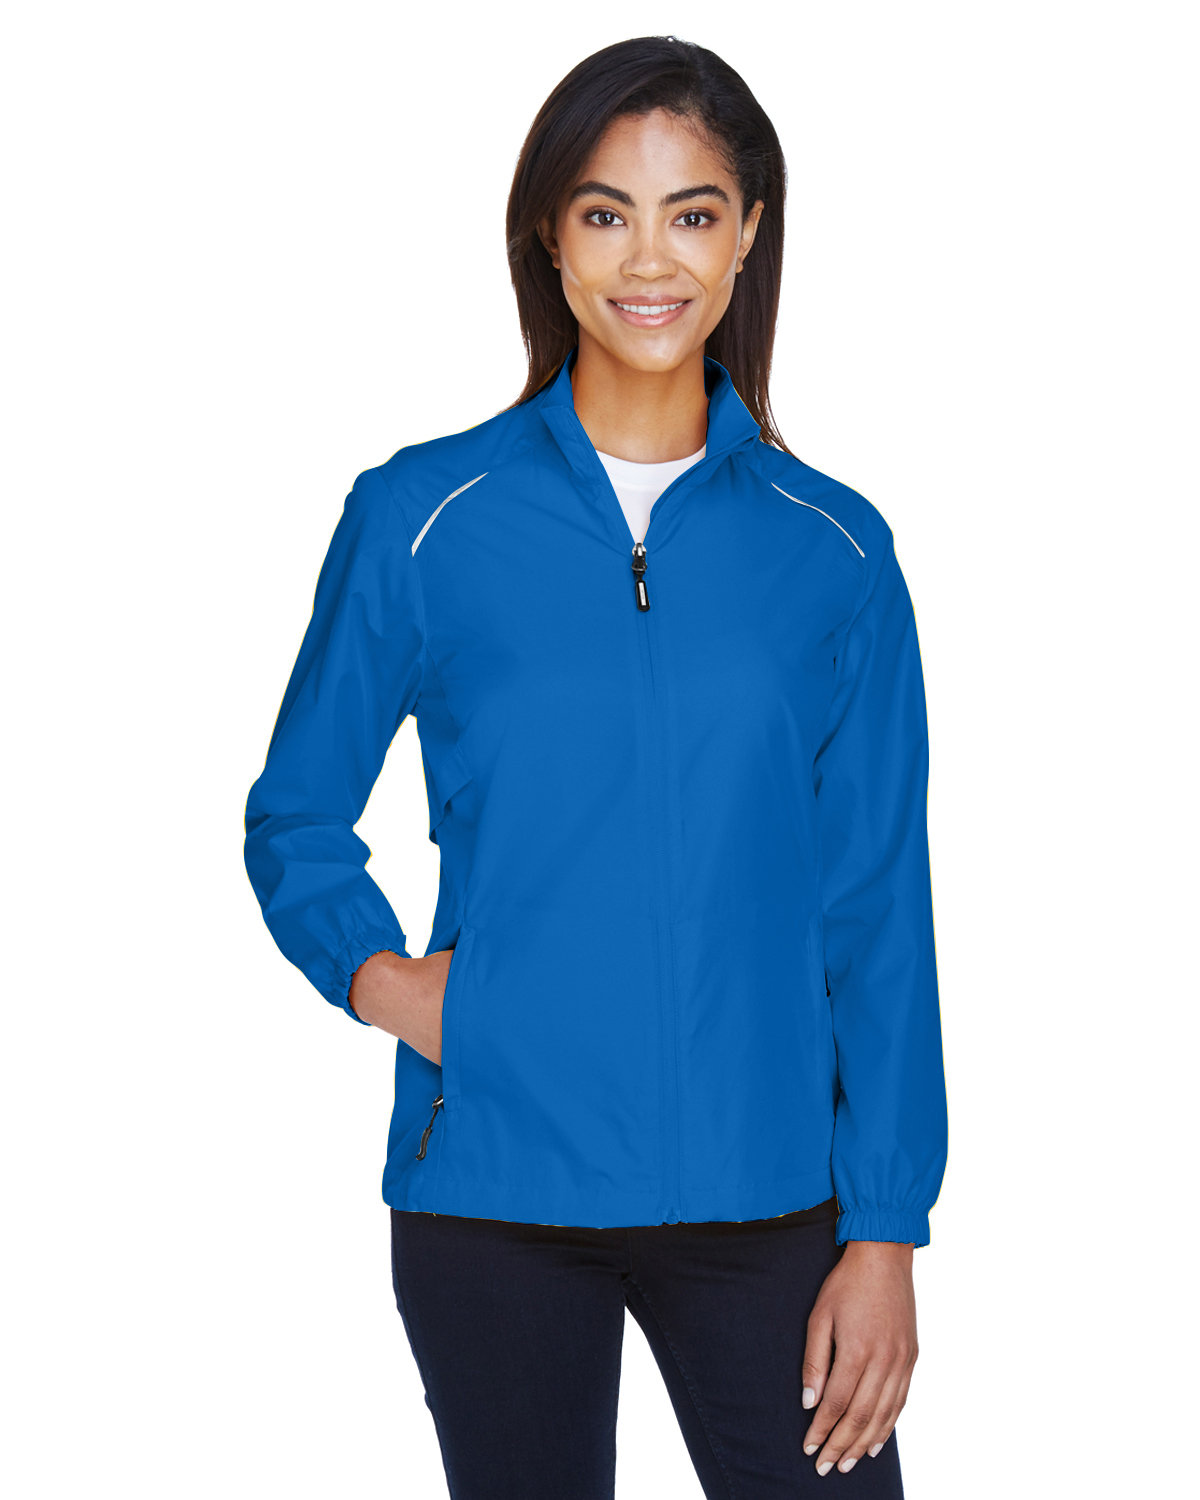 Core 365 Ladies' Motivate Unlined Lightweight Jacket TRUE ROYAL